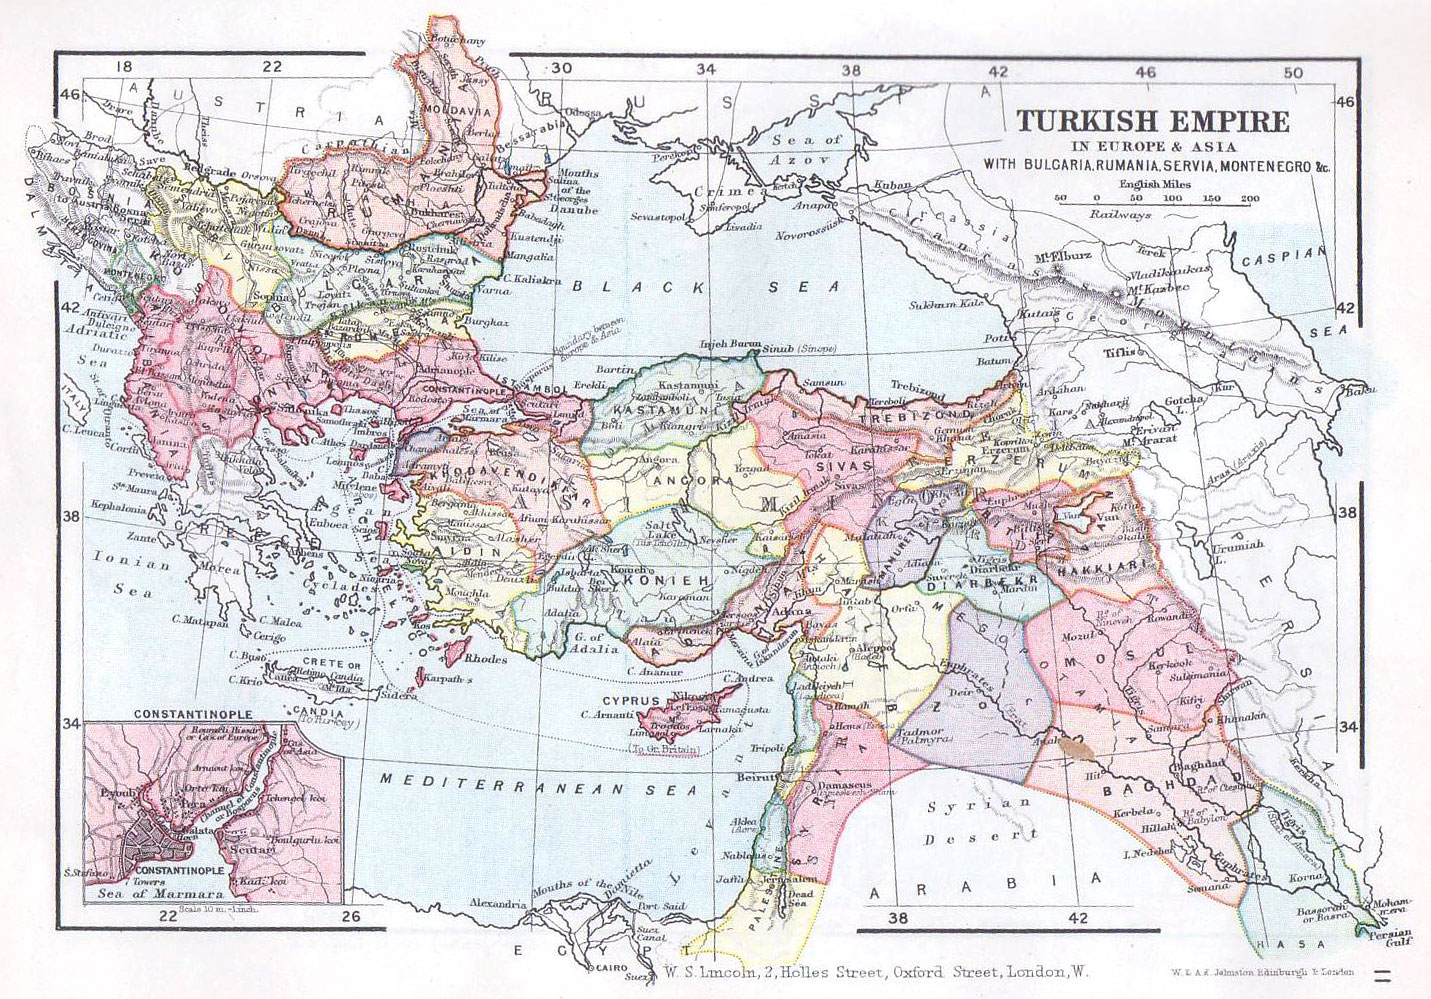 And the Ottoman Empire is Turkey